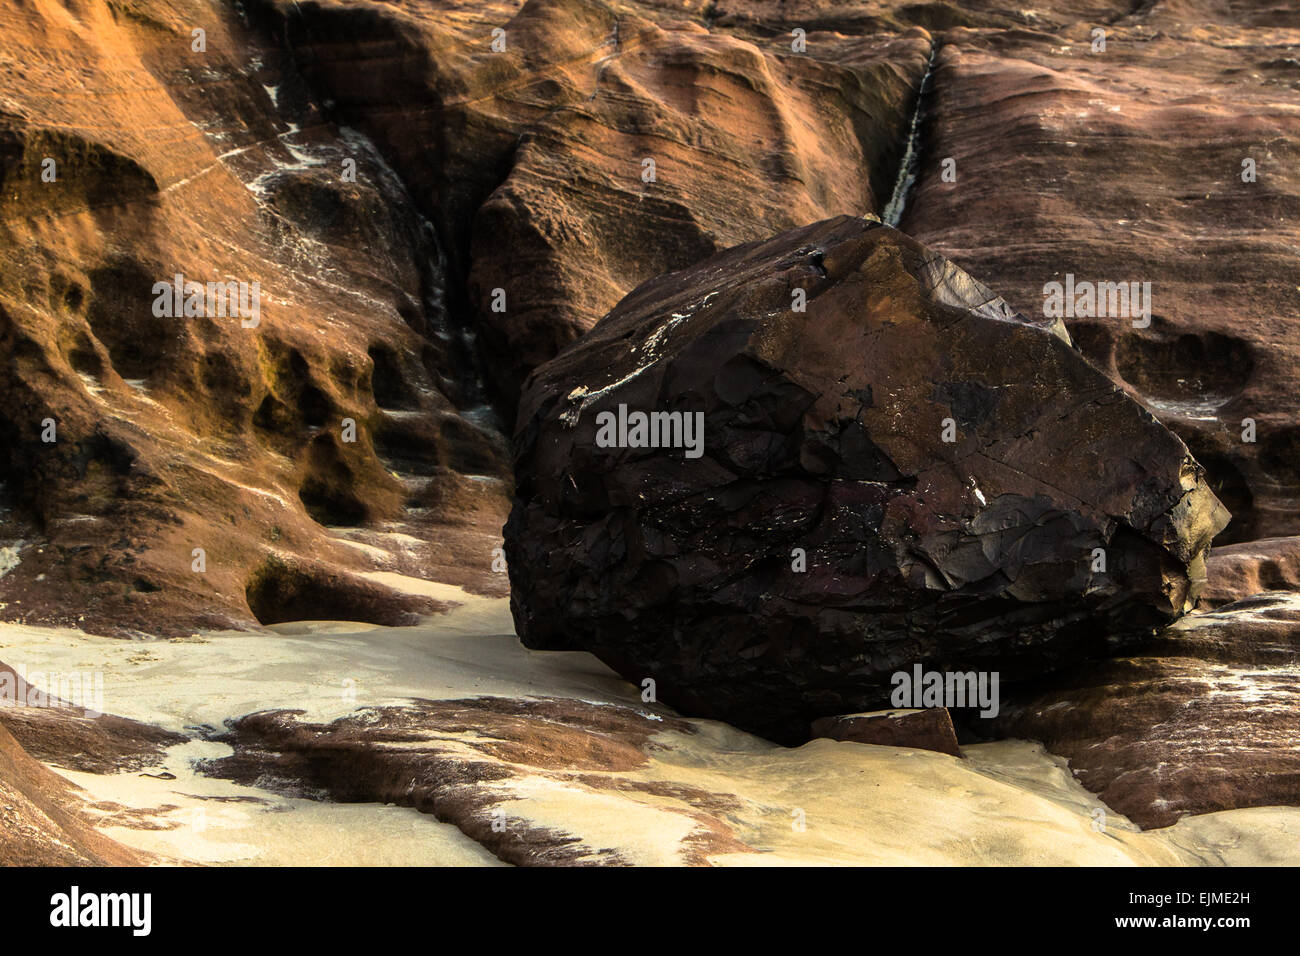 Abstract rock and rock wall on hues of red and sand on the ground - Stock Image